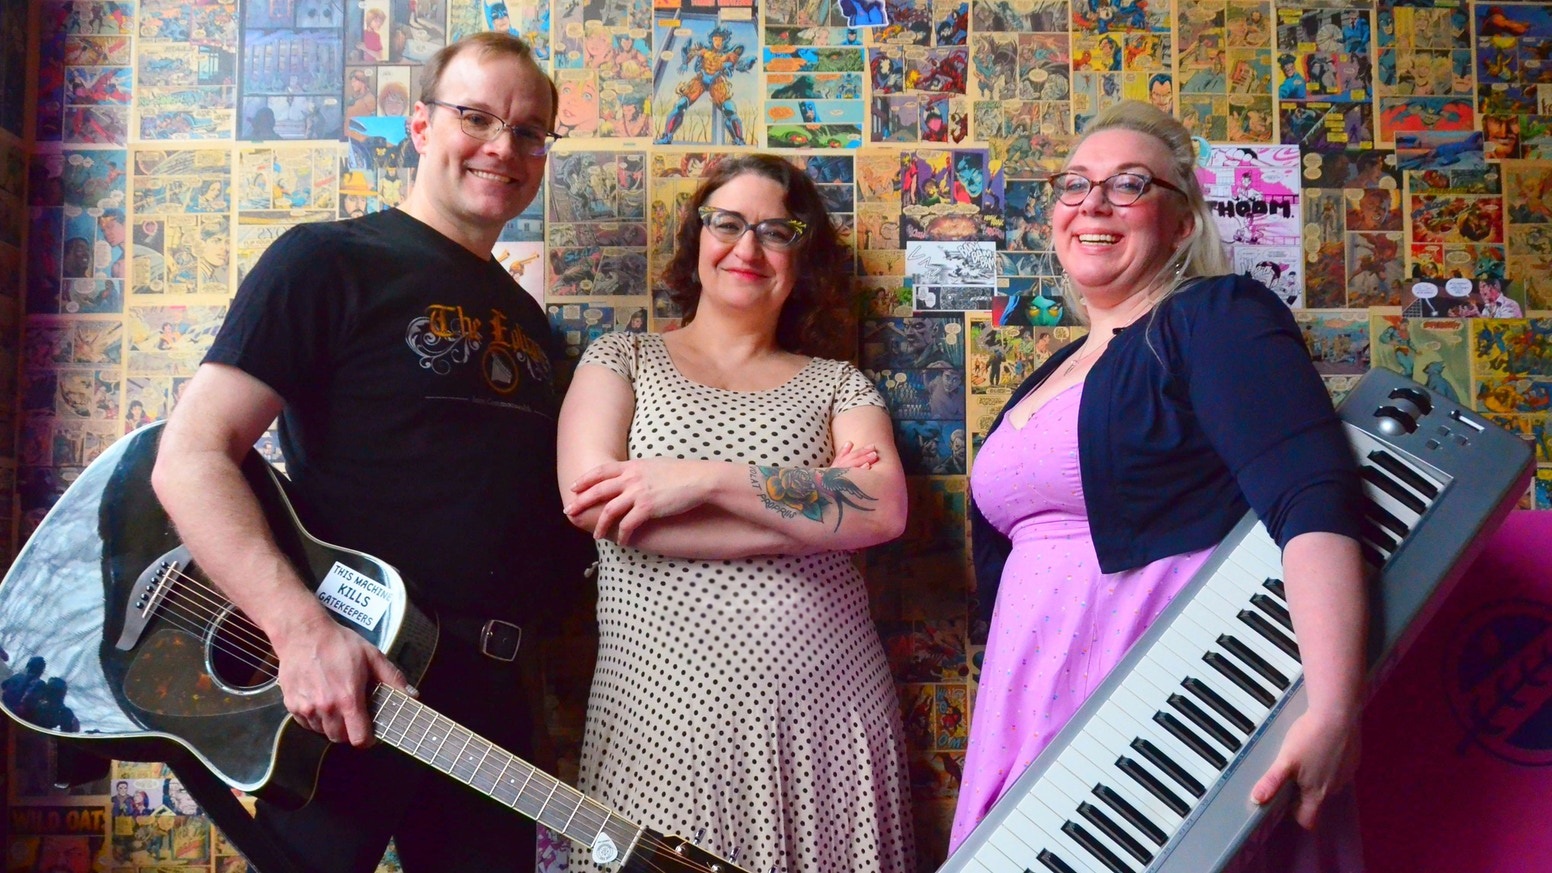 PDX's favorite nerdy trio aspire to make fifth studio album, go on tour, film at 11.